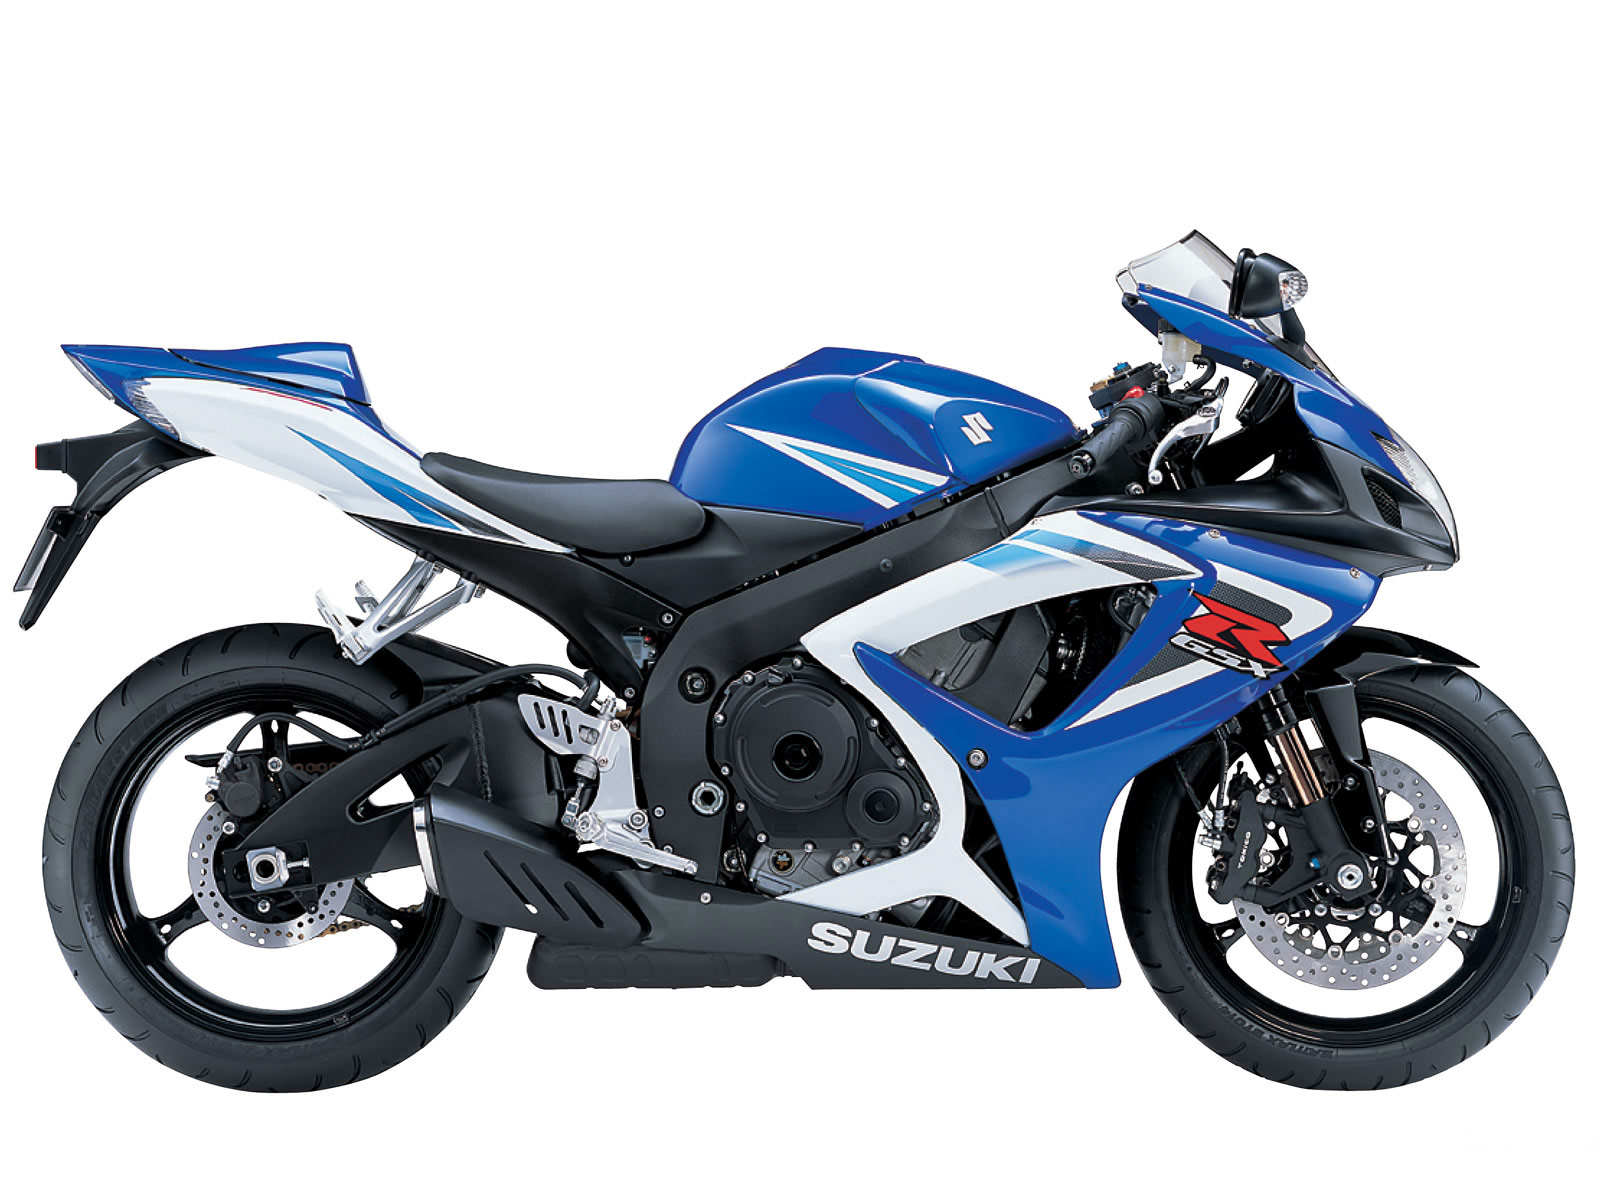 suzuki gsx r 750 2006 specifications desktop wallpapers. Black Bedroom Furniture Sets. Home Design Ideas